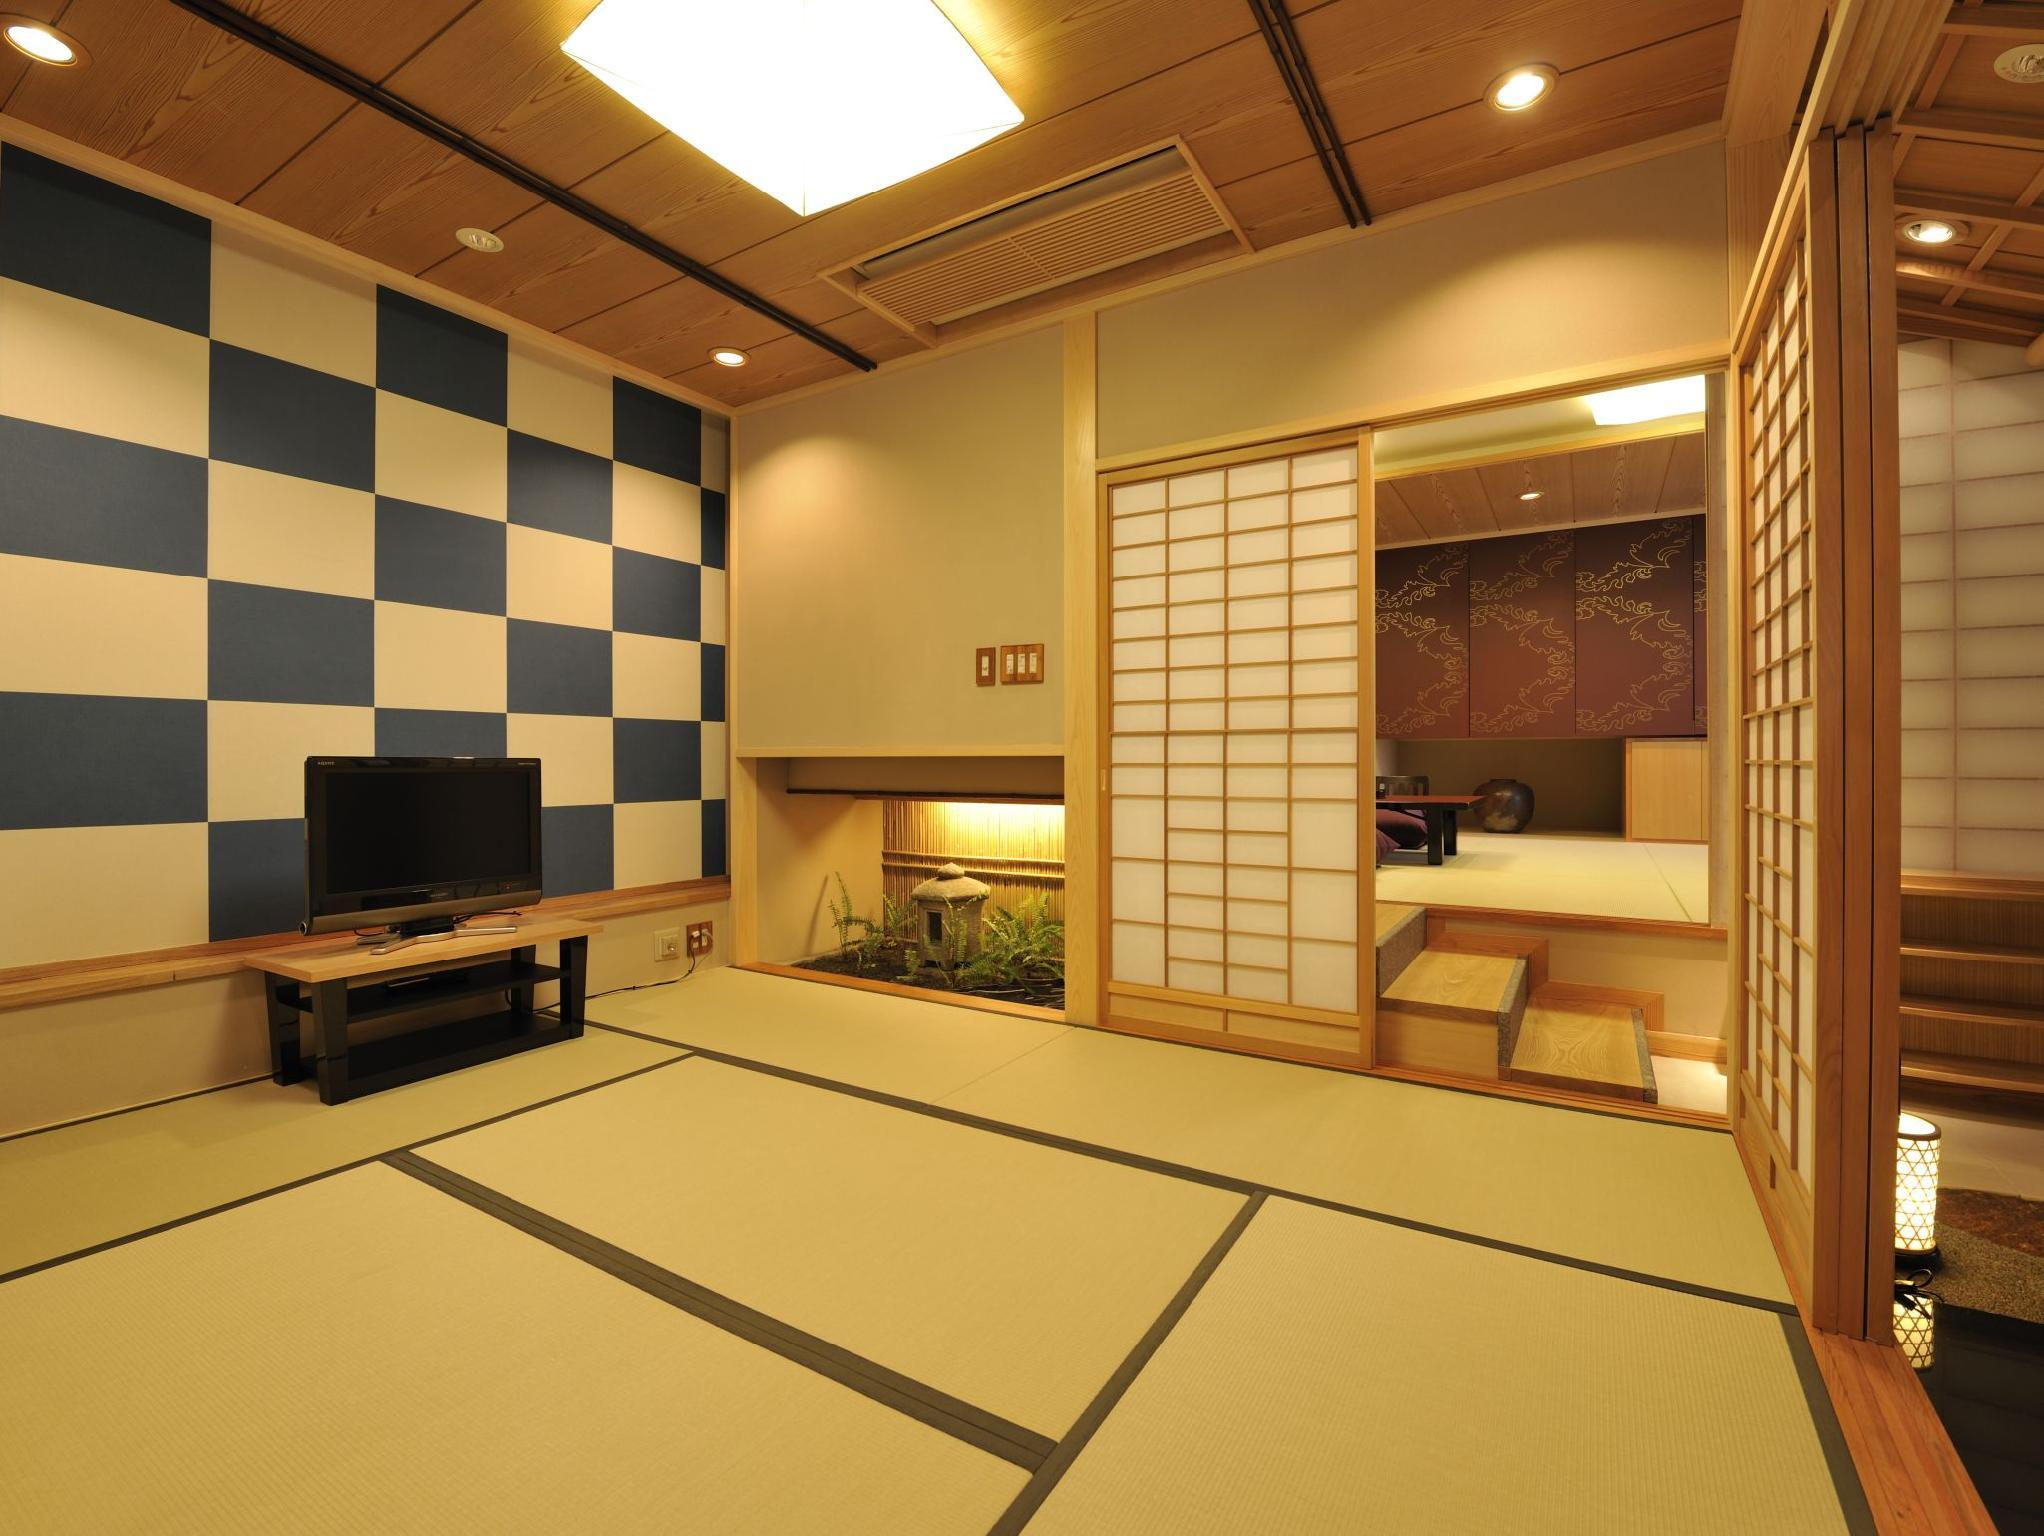 Luxury Japanese Style Room